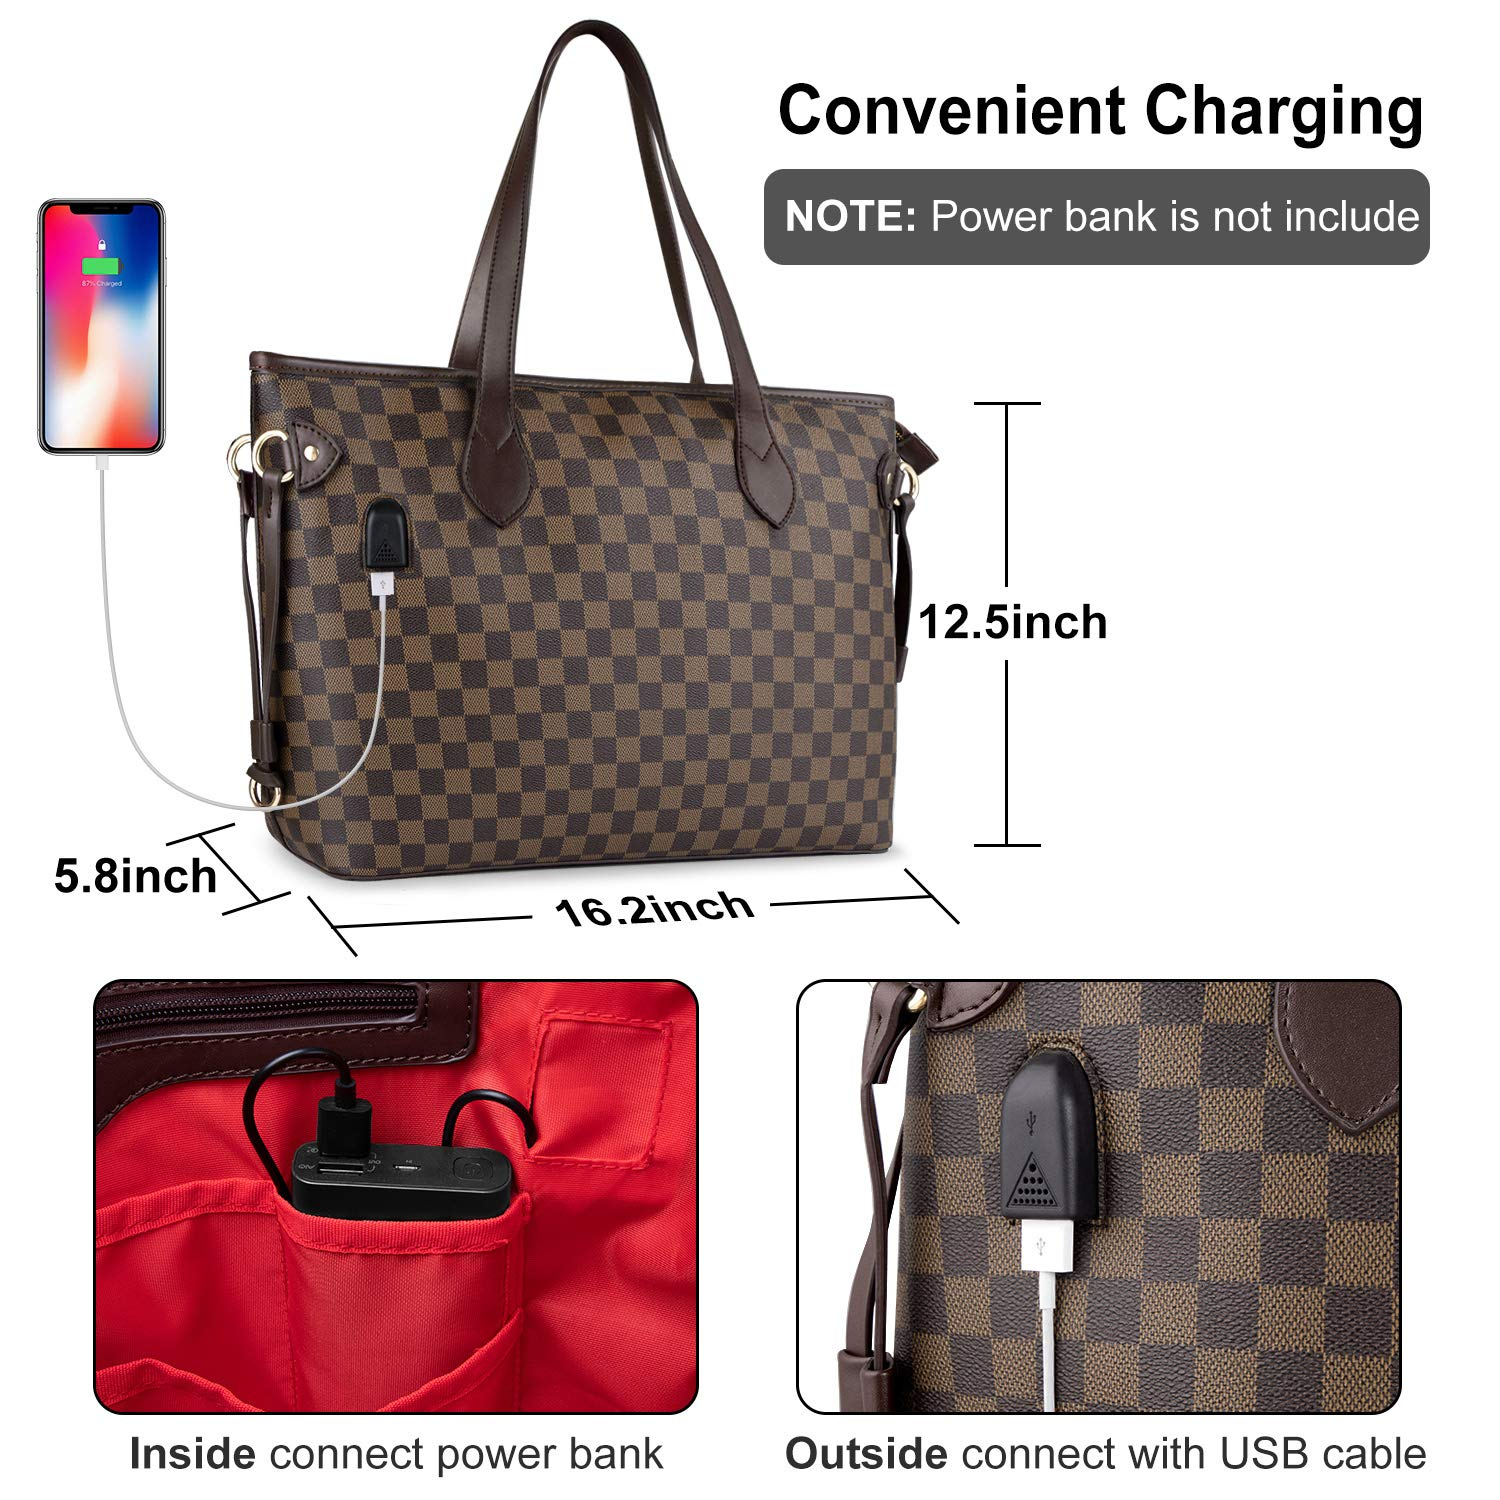 Laptop Tote Bag Stylish Womens Work Office Bag with USB Lightweight PU Leather Water Resistant Teacher Tote Bag Shoulder Bag Fits 15.6 Inch Laptop